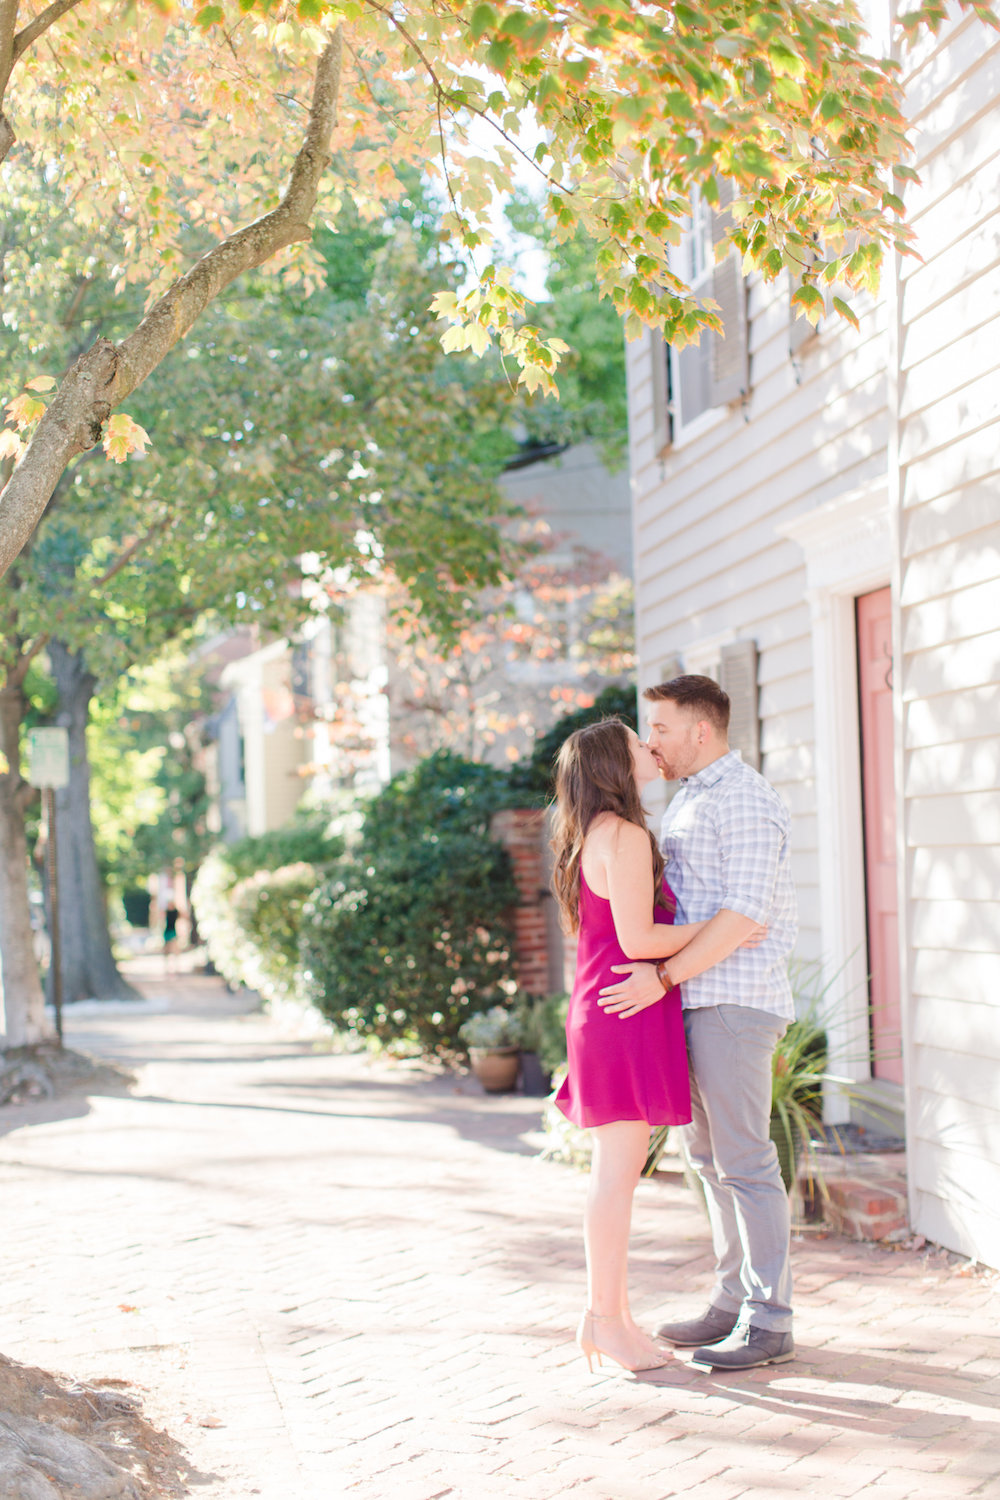 Fall Old Town Alexandria Engagement Photos Megan Kelsey Photography and Sincerely Pete Events - 1.jpg